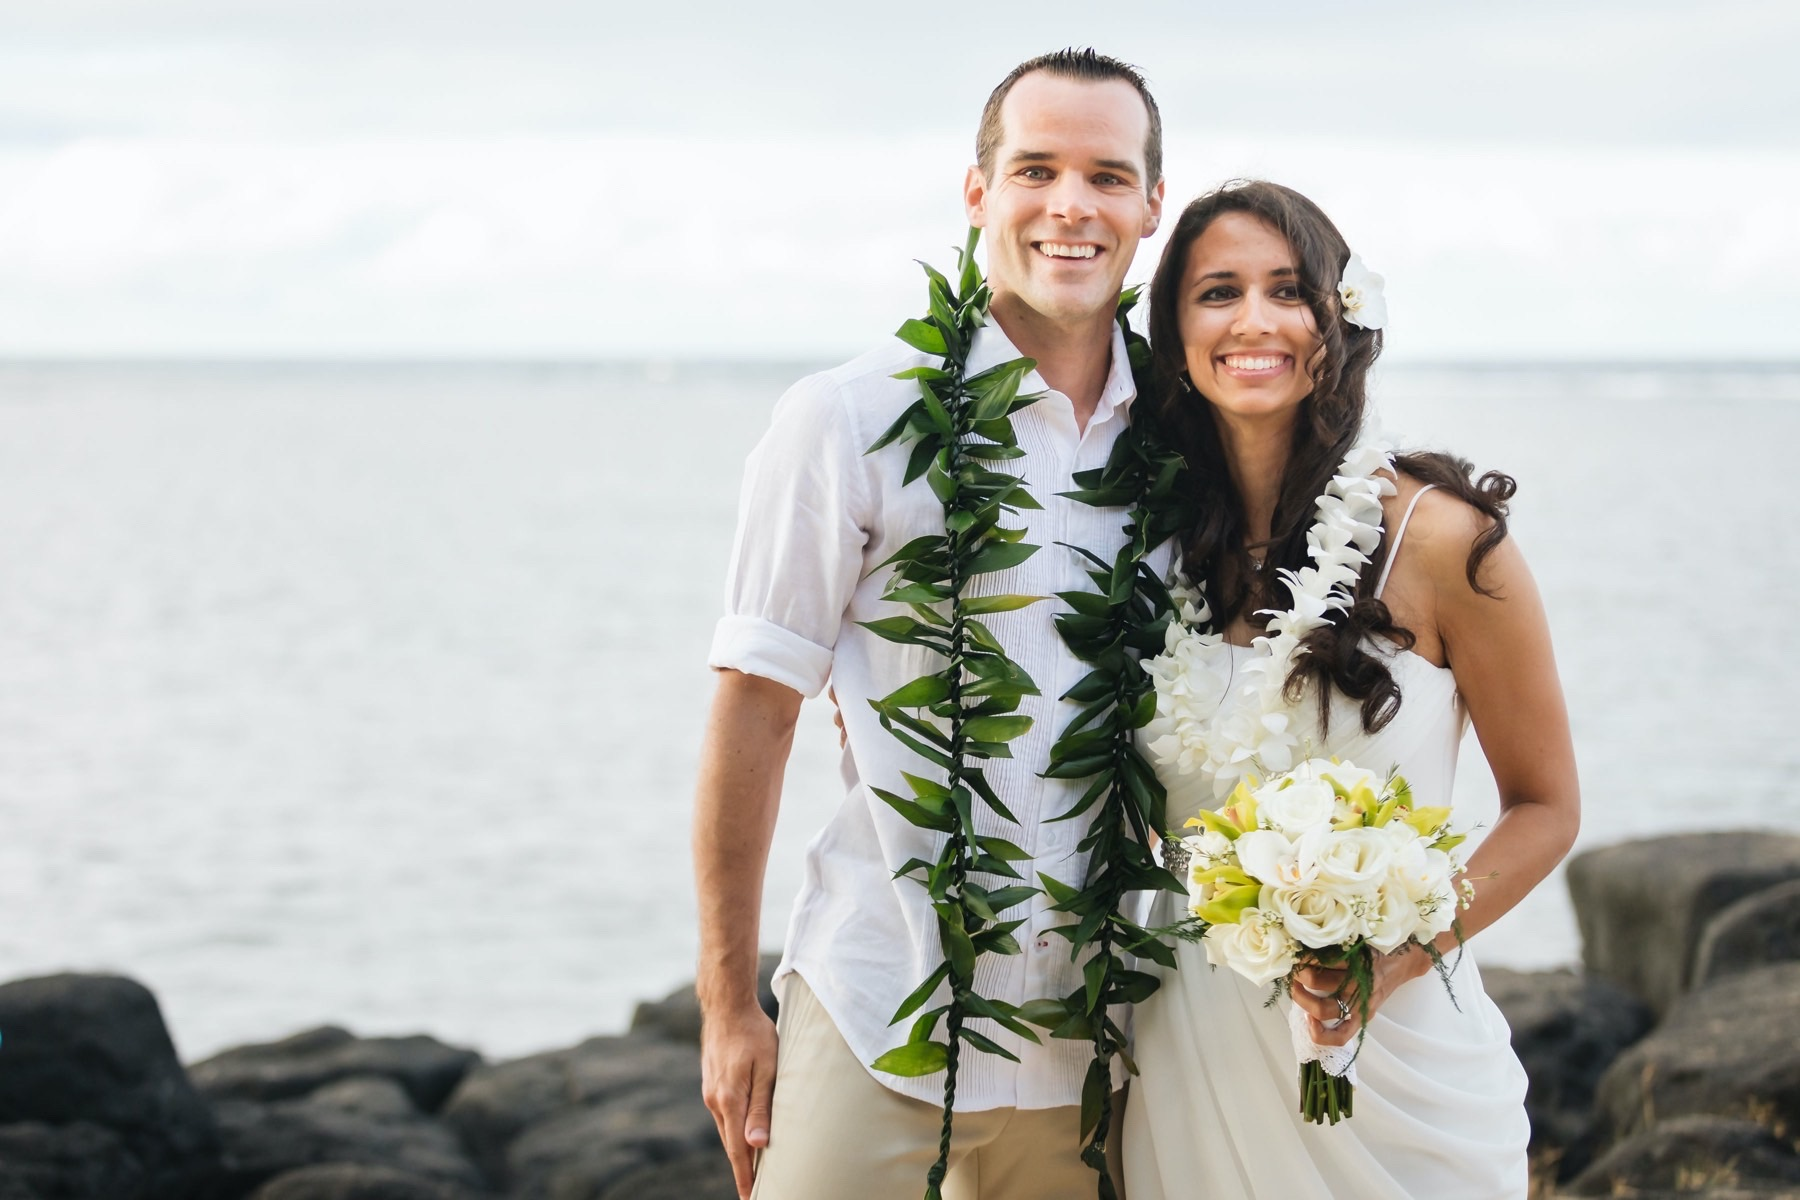 Husband and wife after wedding on the beach.